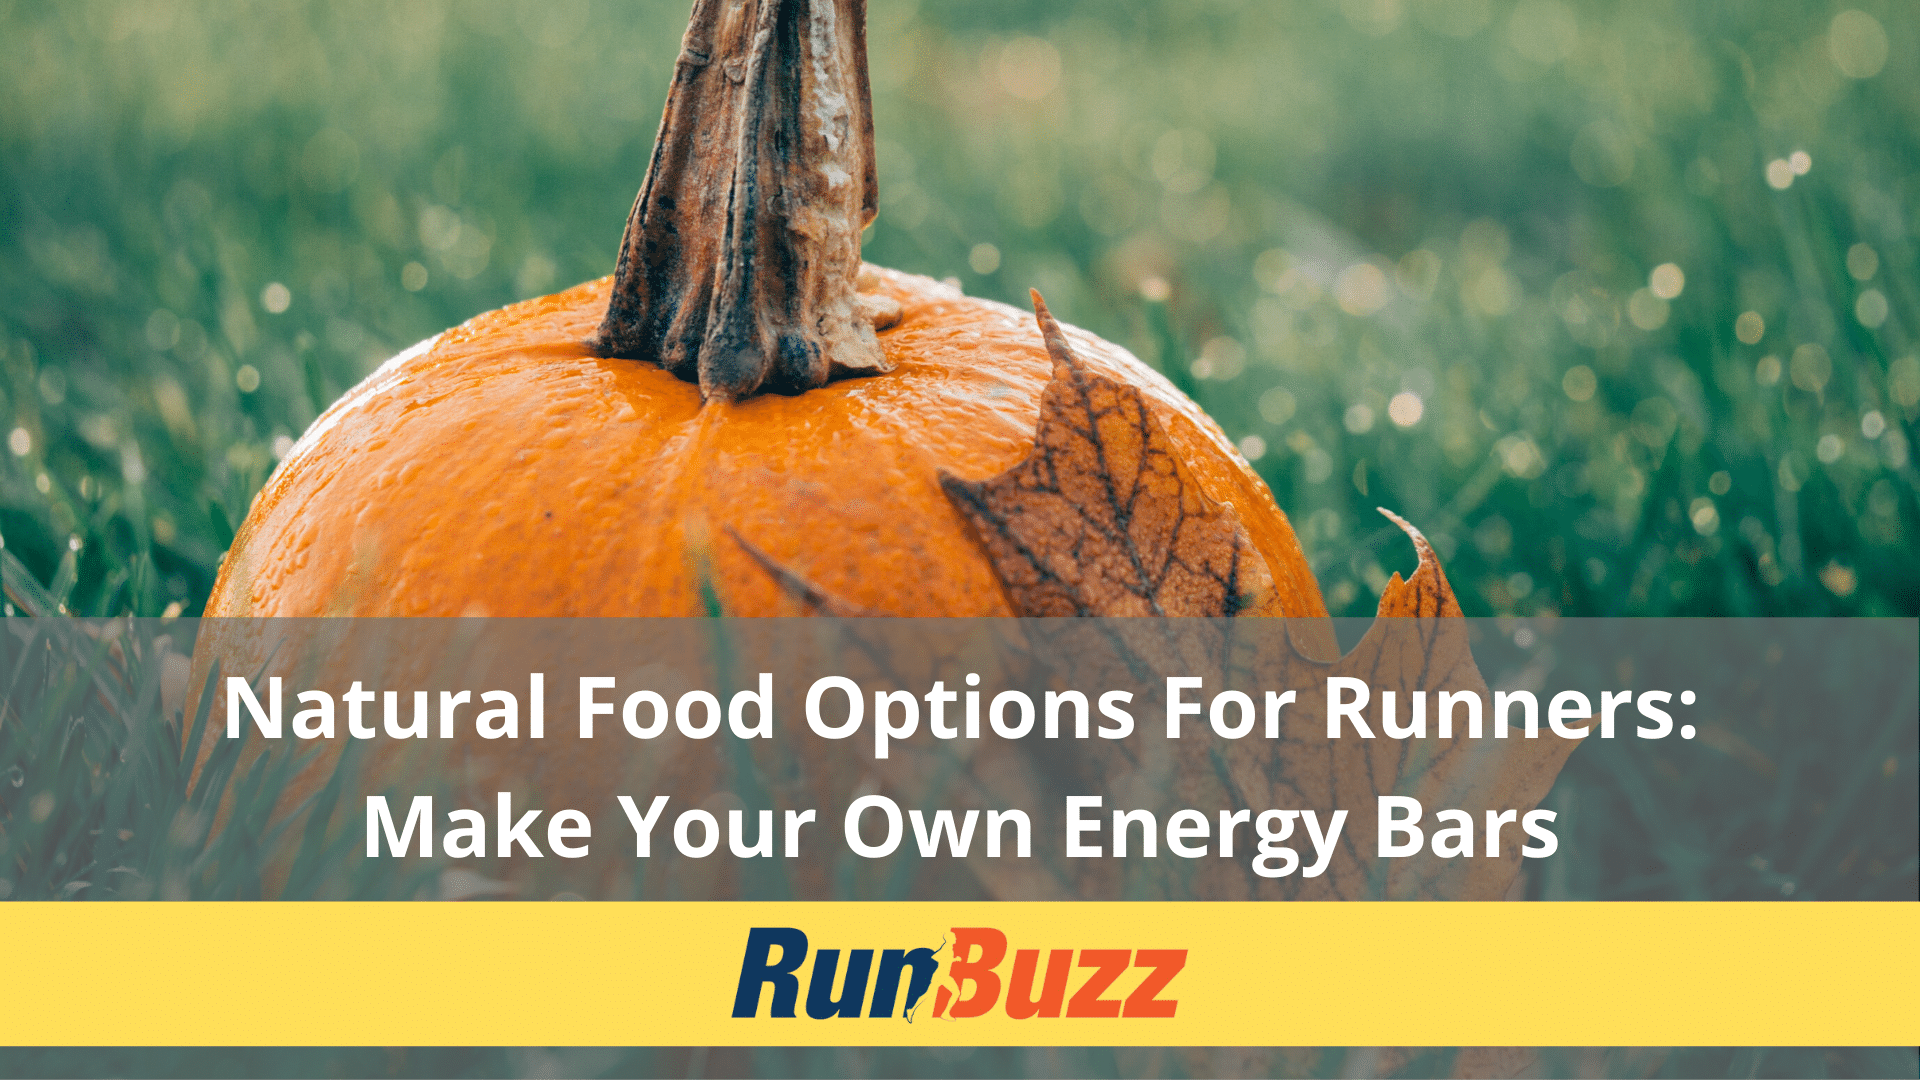 Natural-Food-Options-For-Runners_-Make-Your-Own-Energy-Bars